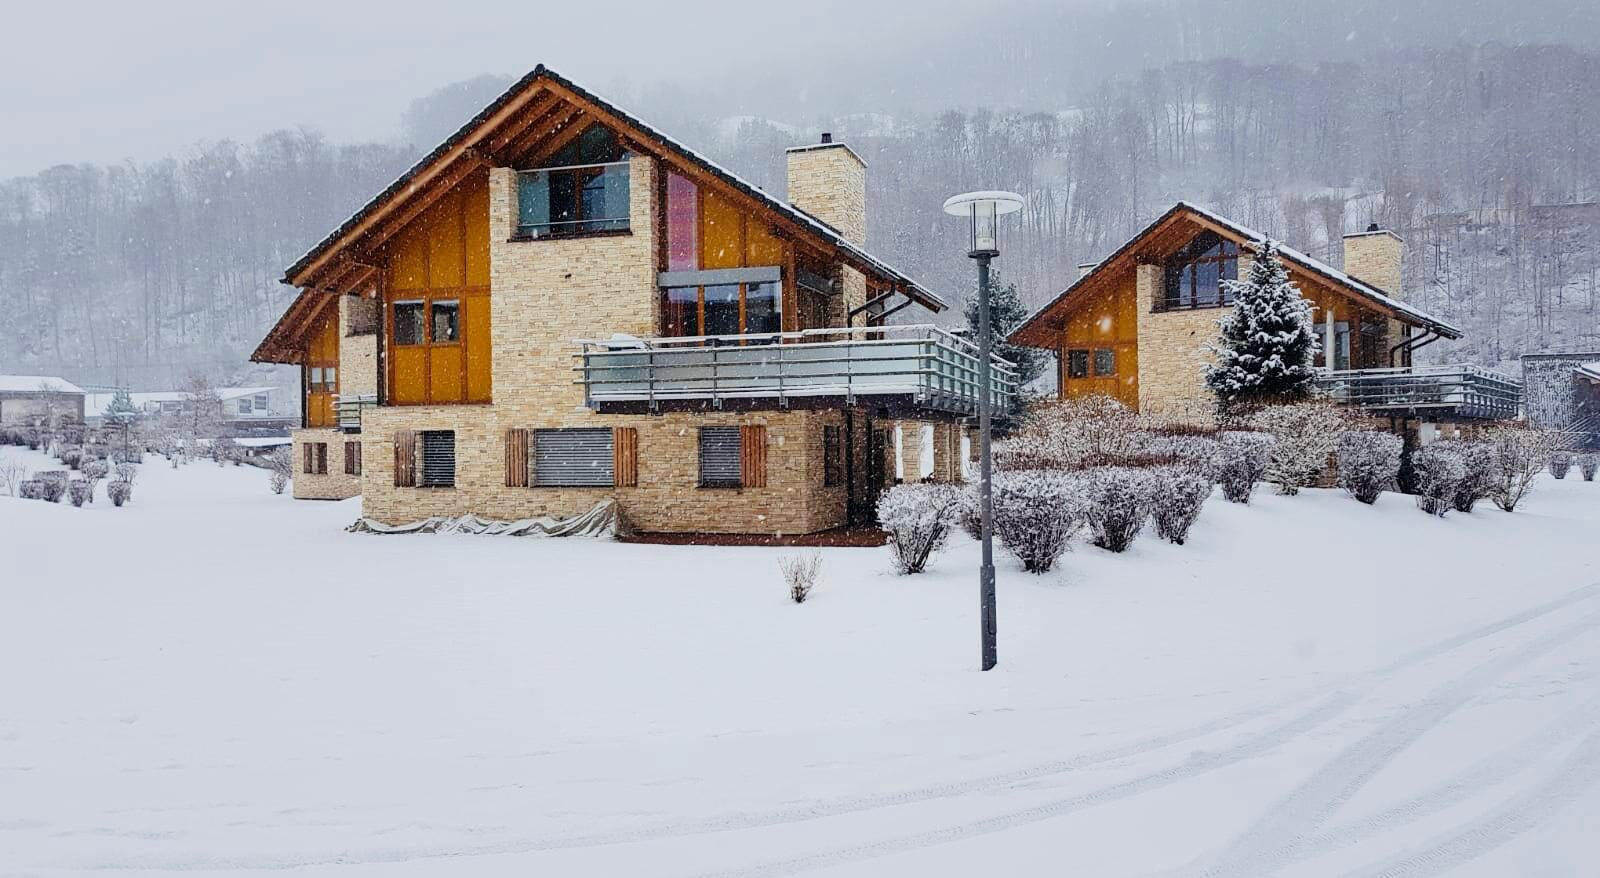 Resort Walensee in total white, will make your holidays extra fun!